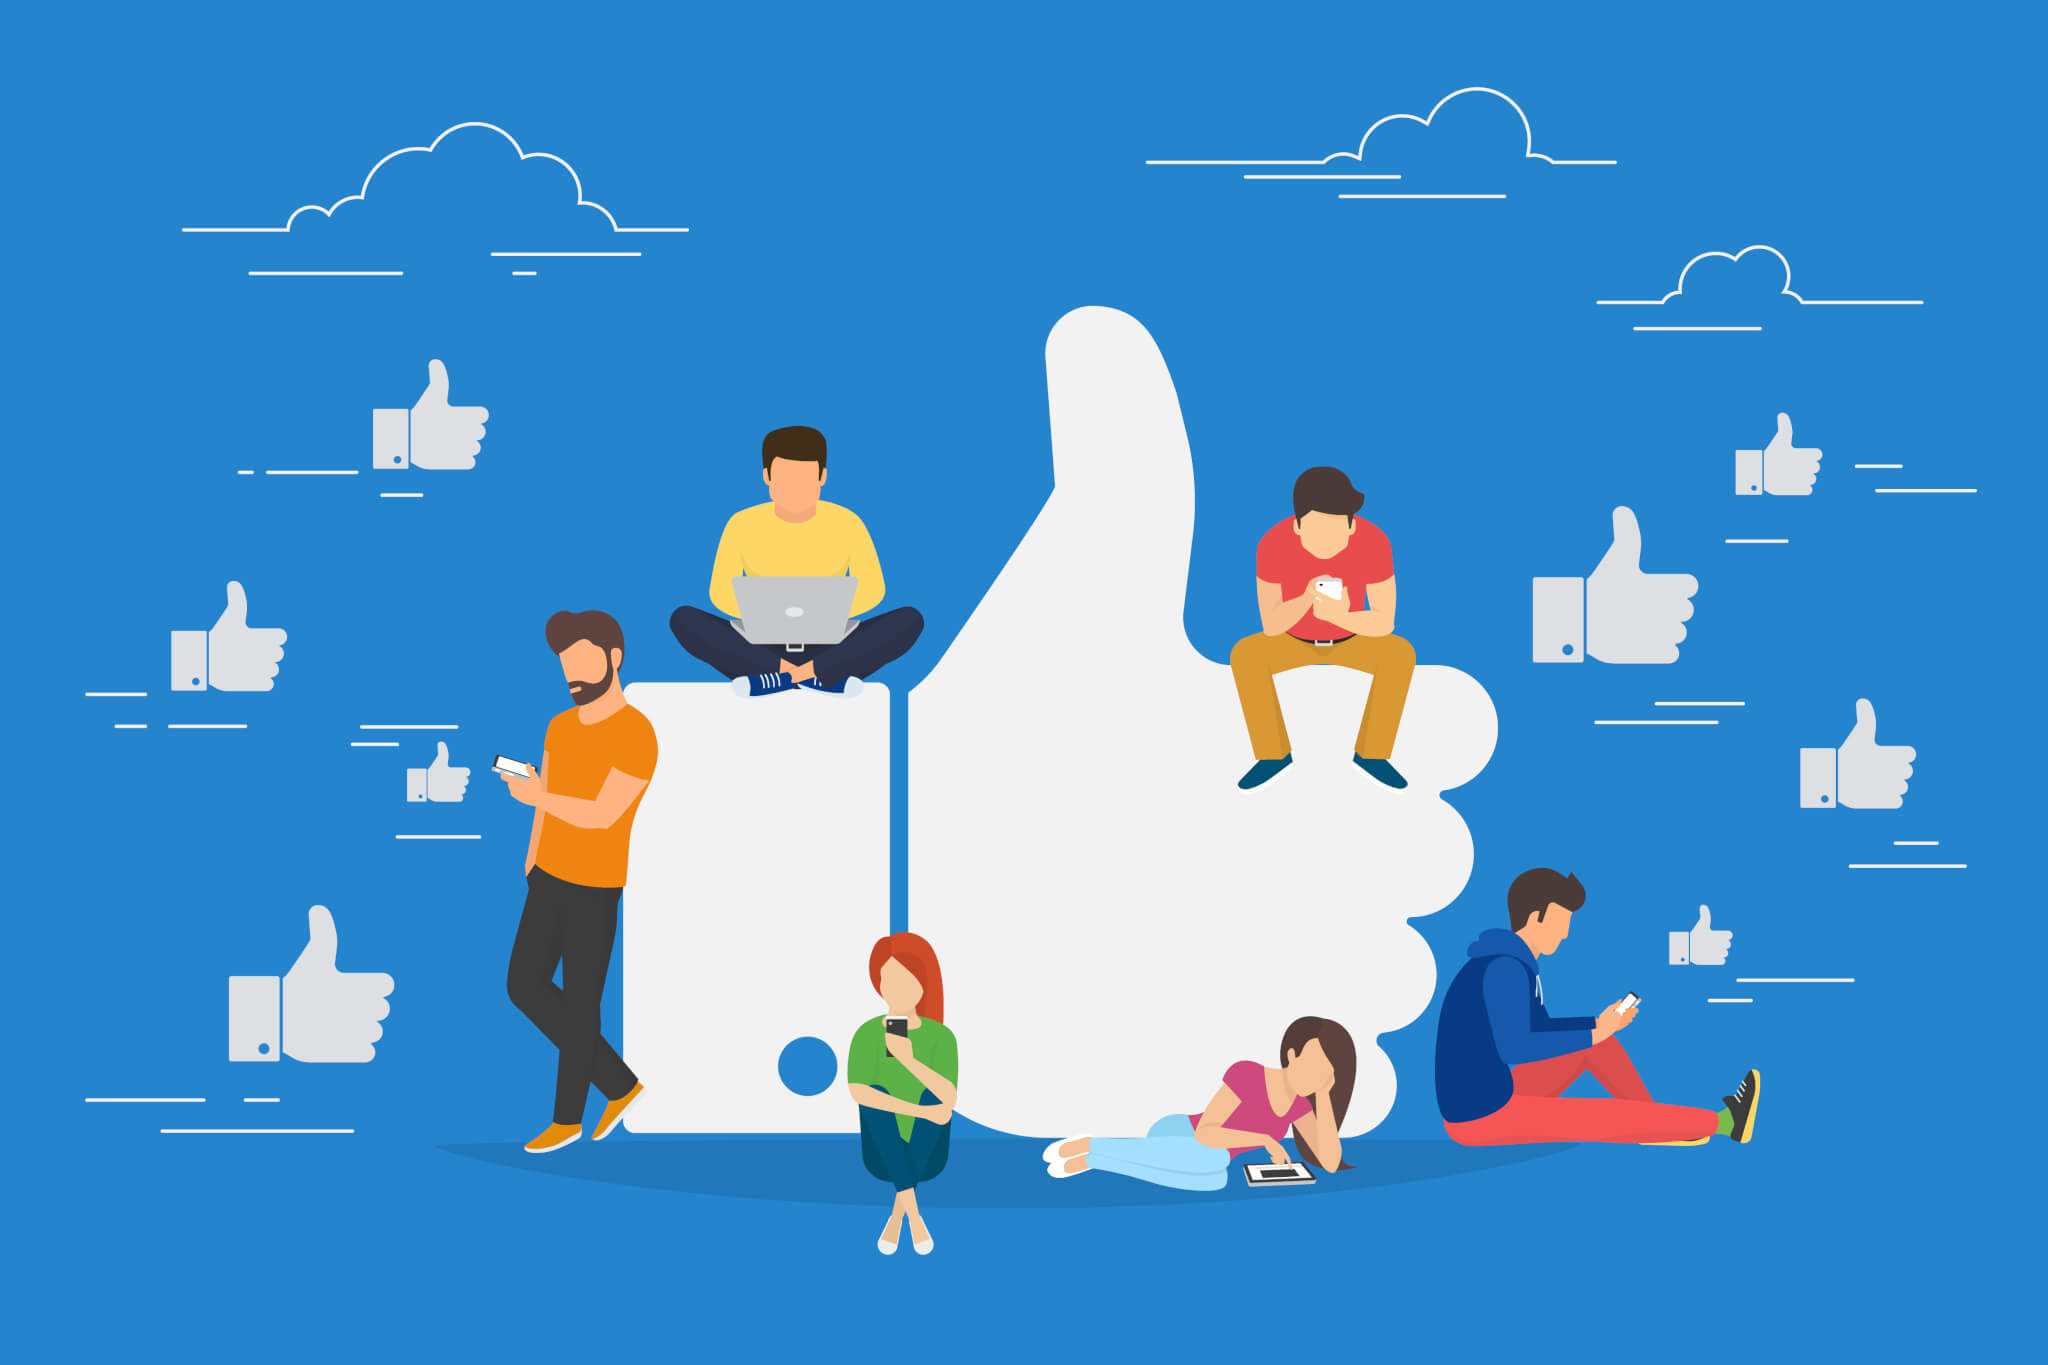 A cartoon of a Facebook like with people sitting around it on their phones